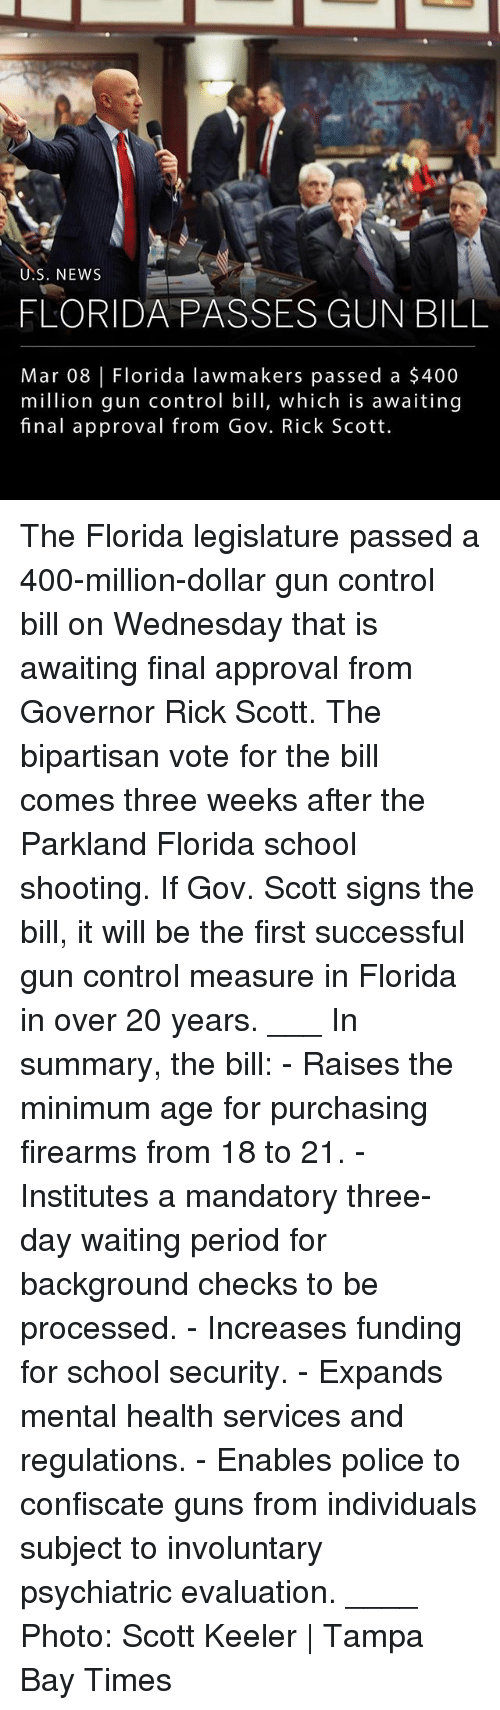 Guns, Memes, and News: S. NEWS  FLORIDA PASSES GUN BILL  Mar 08 |Florida lawmakers passed a $400  million gun control bill, which is awaiting  final approval from Gov. Rick Scott The Florida legislature passed a 400-million-dollar gun control bill on Wednesday that is awaiting final approval from Governor Rick Scott. The bipartisan vote for the bill comes three weeks after the Parkland Florida school shooting. If Gov. Scott signs the bill, it will be the first successful gun control measure in Florida in over 20 years. ___ In summary, the bill: - Raises the minimum age for purchasing firearms from 18 to 21. - Institutes a mandatory three-day waiting period for background checks to be processed. - Increases funding for school security. - Expands mental health services and regulations. - Enables police to confiscate guns from individuals subject to involuntary psychiatric evaluation. ____ Photo: Scott Keeler | Tampa Bay Times